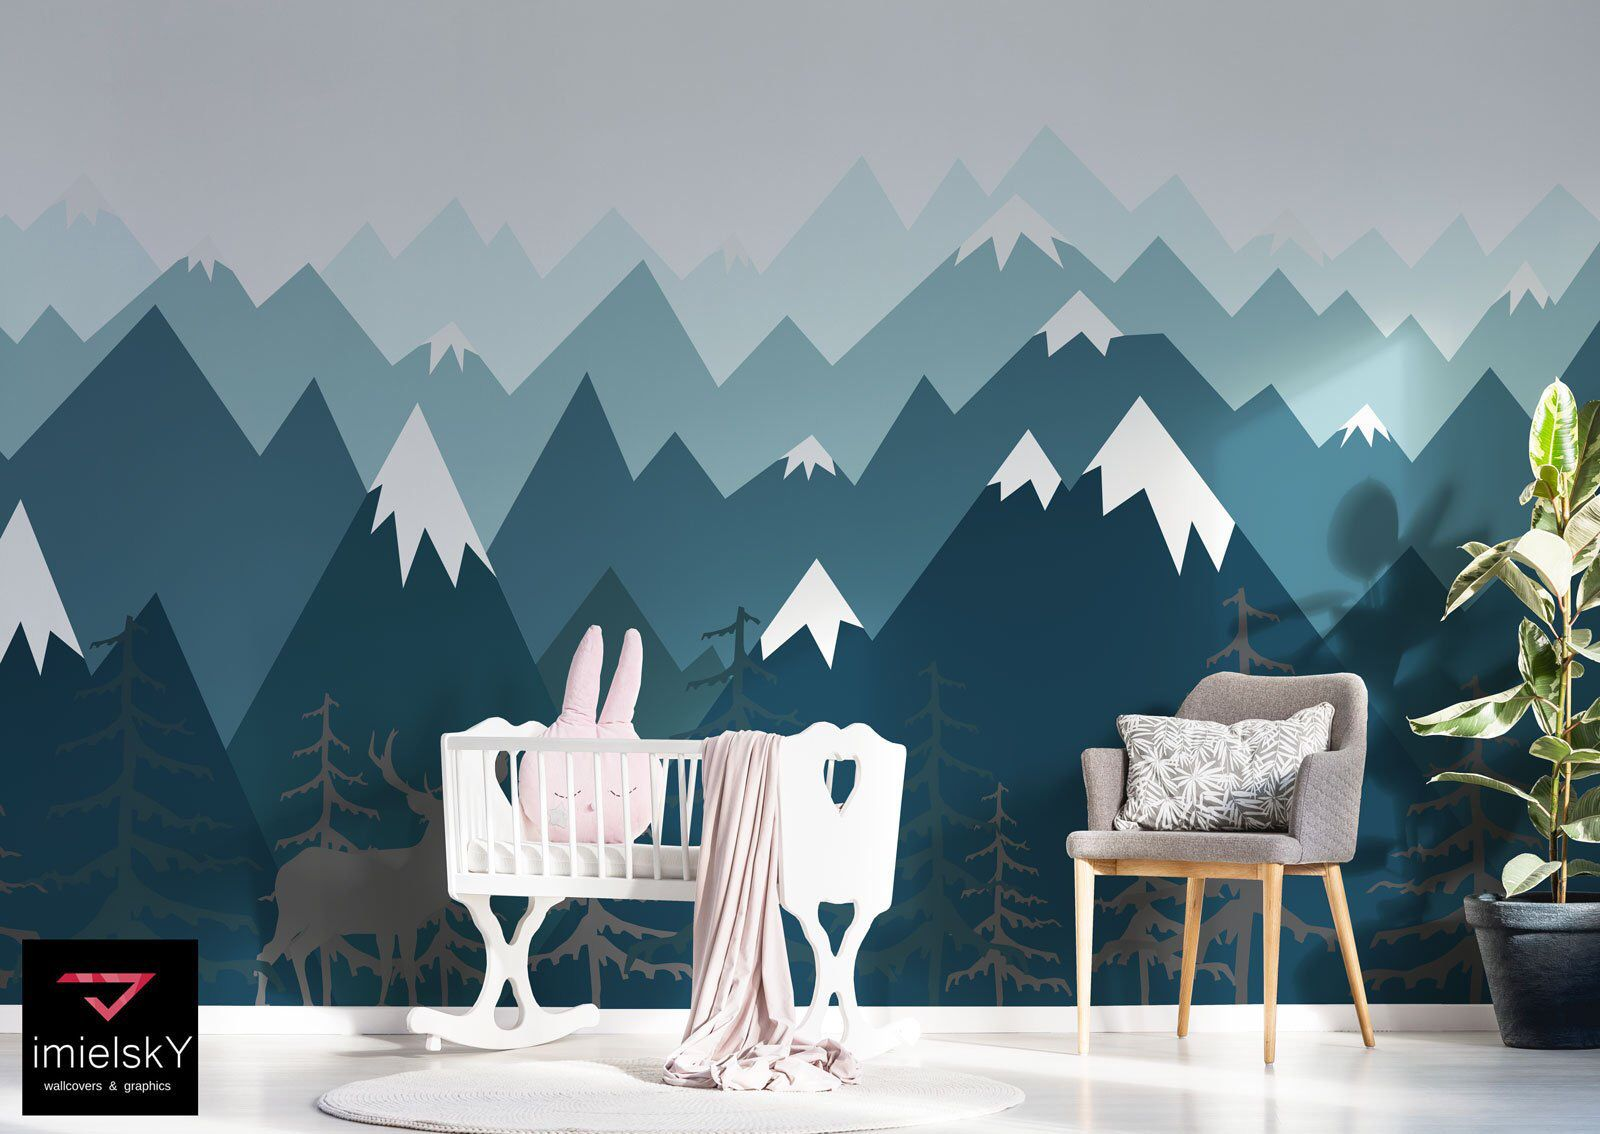 Mountain Wall Decals Nursery Baby Room Navy Blue Ombre Wall Art Repositionable Woodland Wall Mountain Wall Decal Mountain Wall Decal Nursery Navy Blue Wall Art